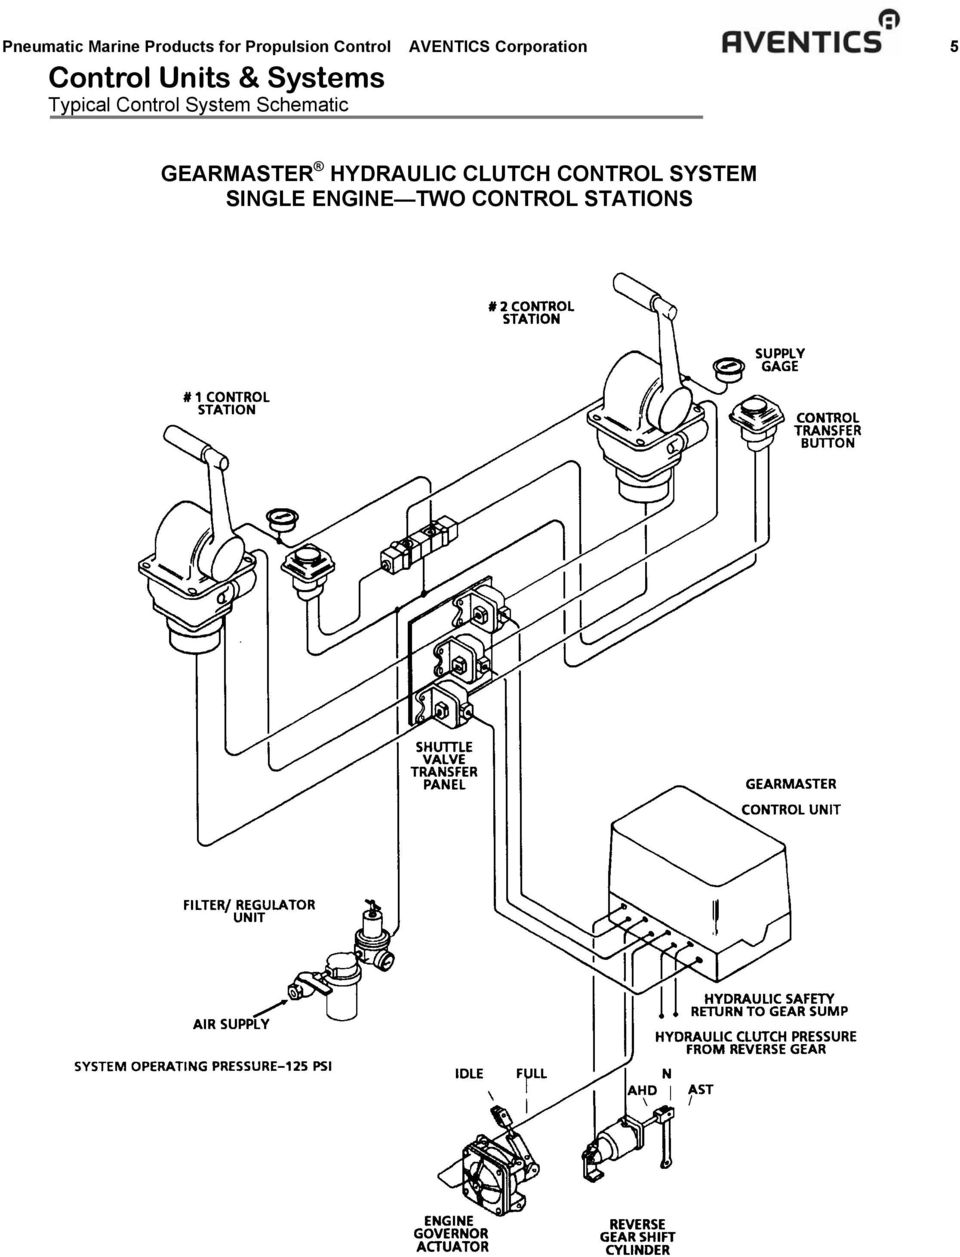 famous typical control system ornament